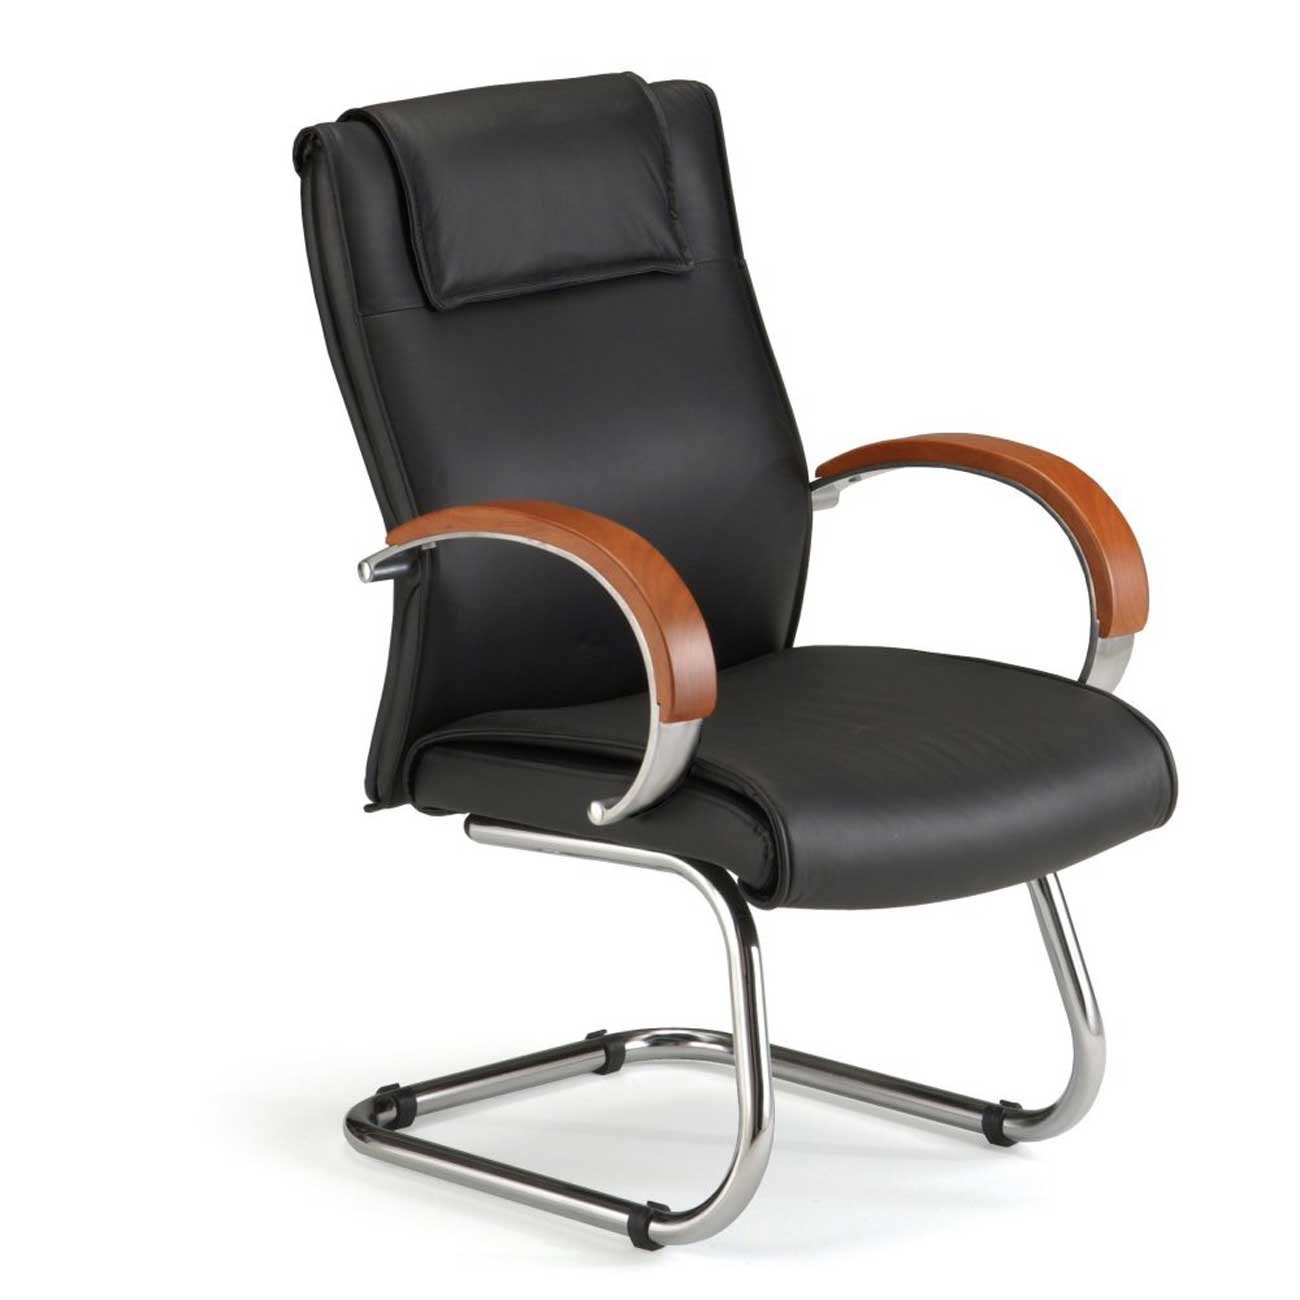 LEATHER EXECUTIVE OFFICE CHAIR W | OFFICE CHAIRS